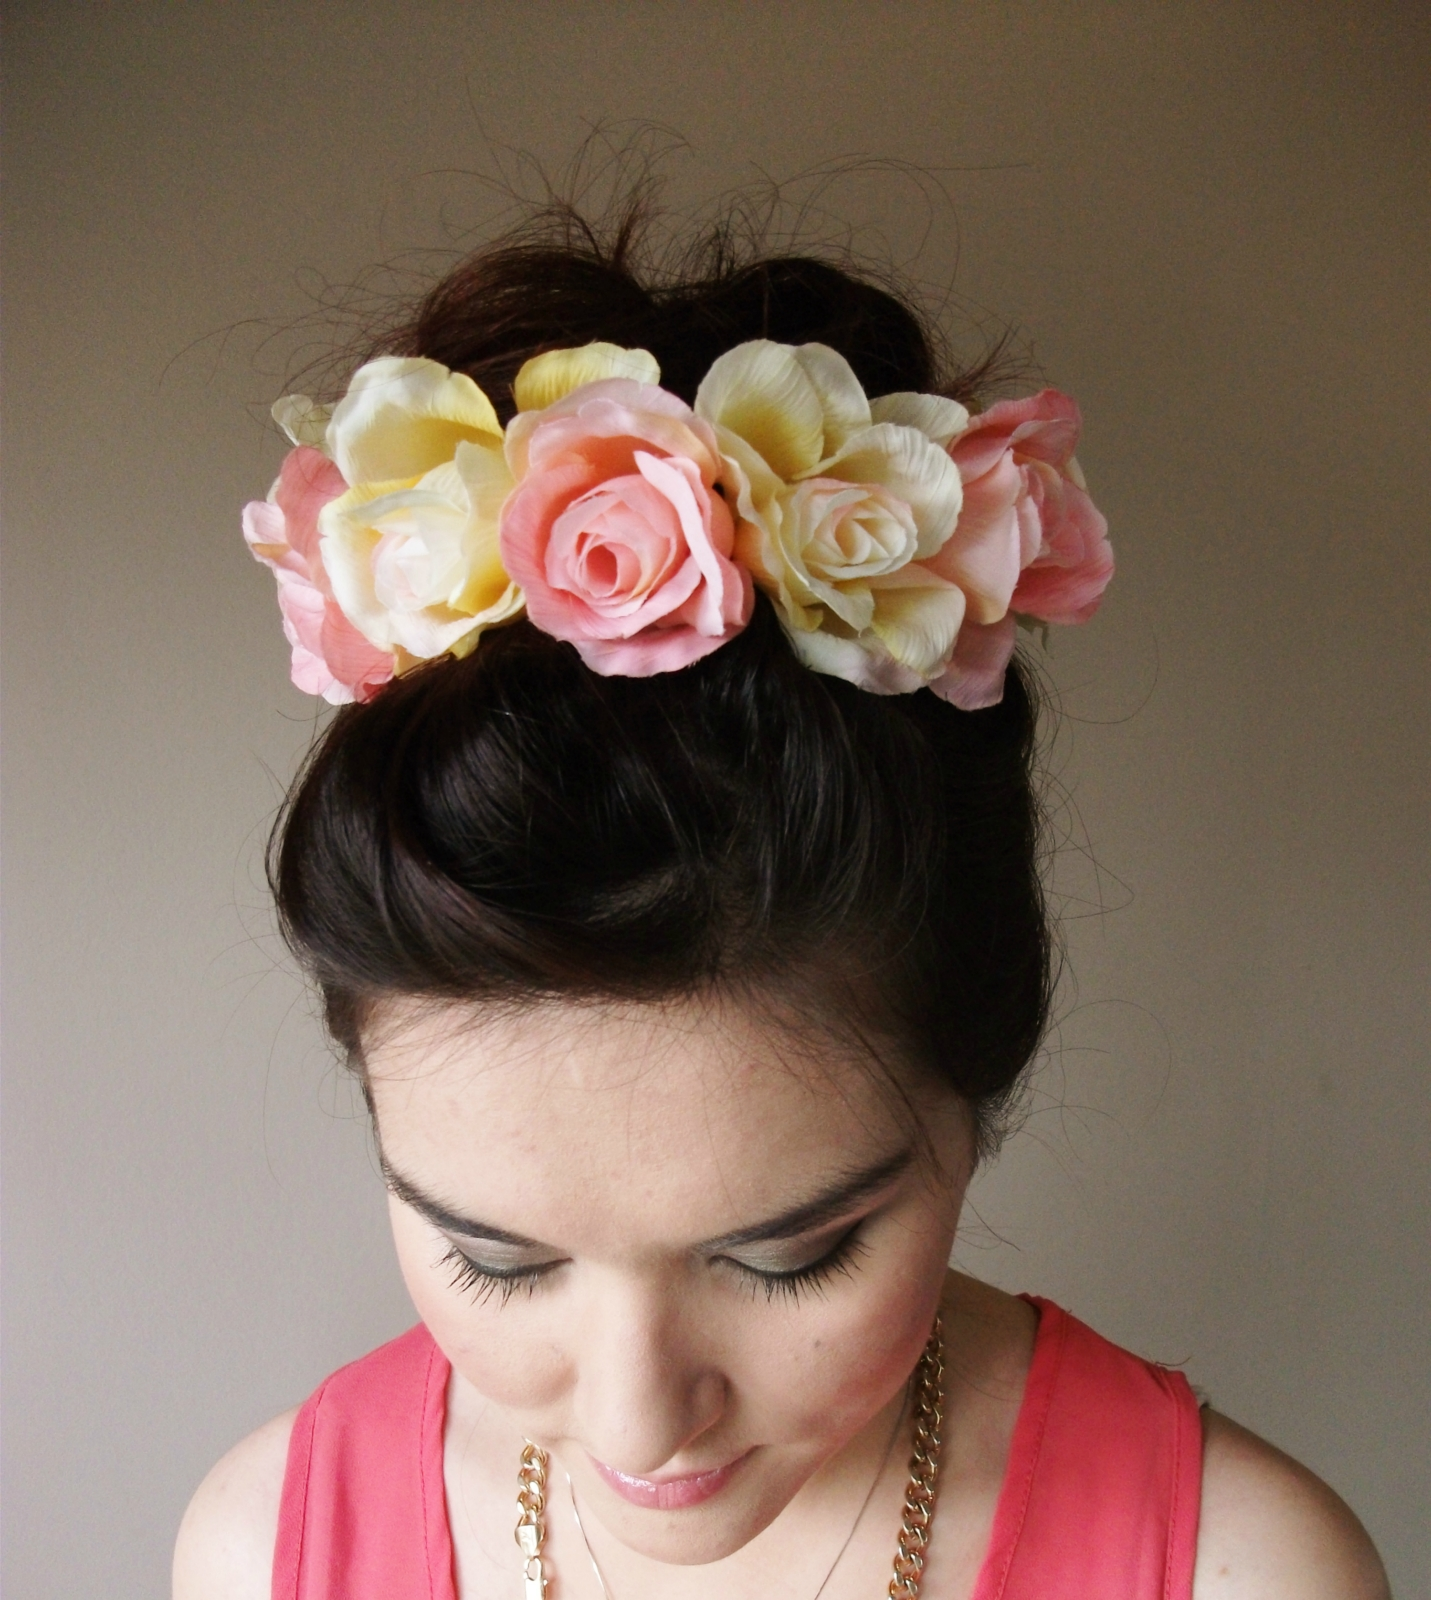 1000 Ideas About Flower Crown Hair On Pinterest: 1000+ Images About 18th Birthday Ideas(Photoshoot) On